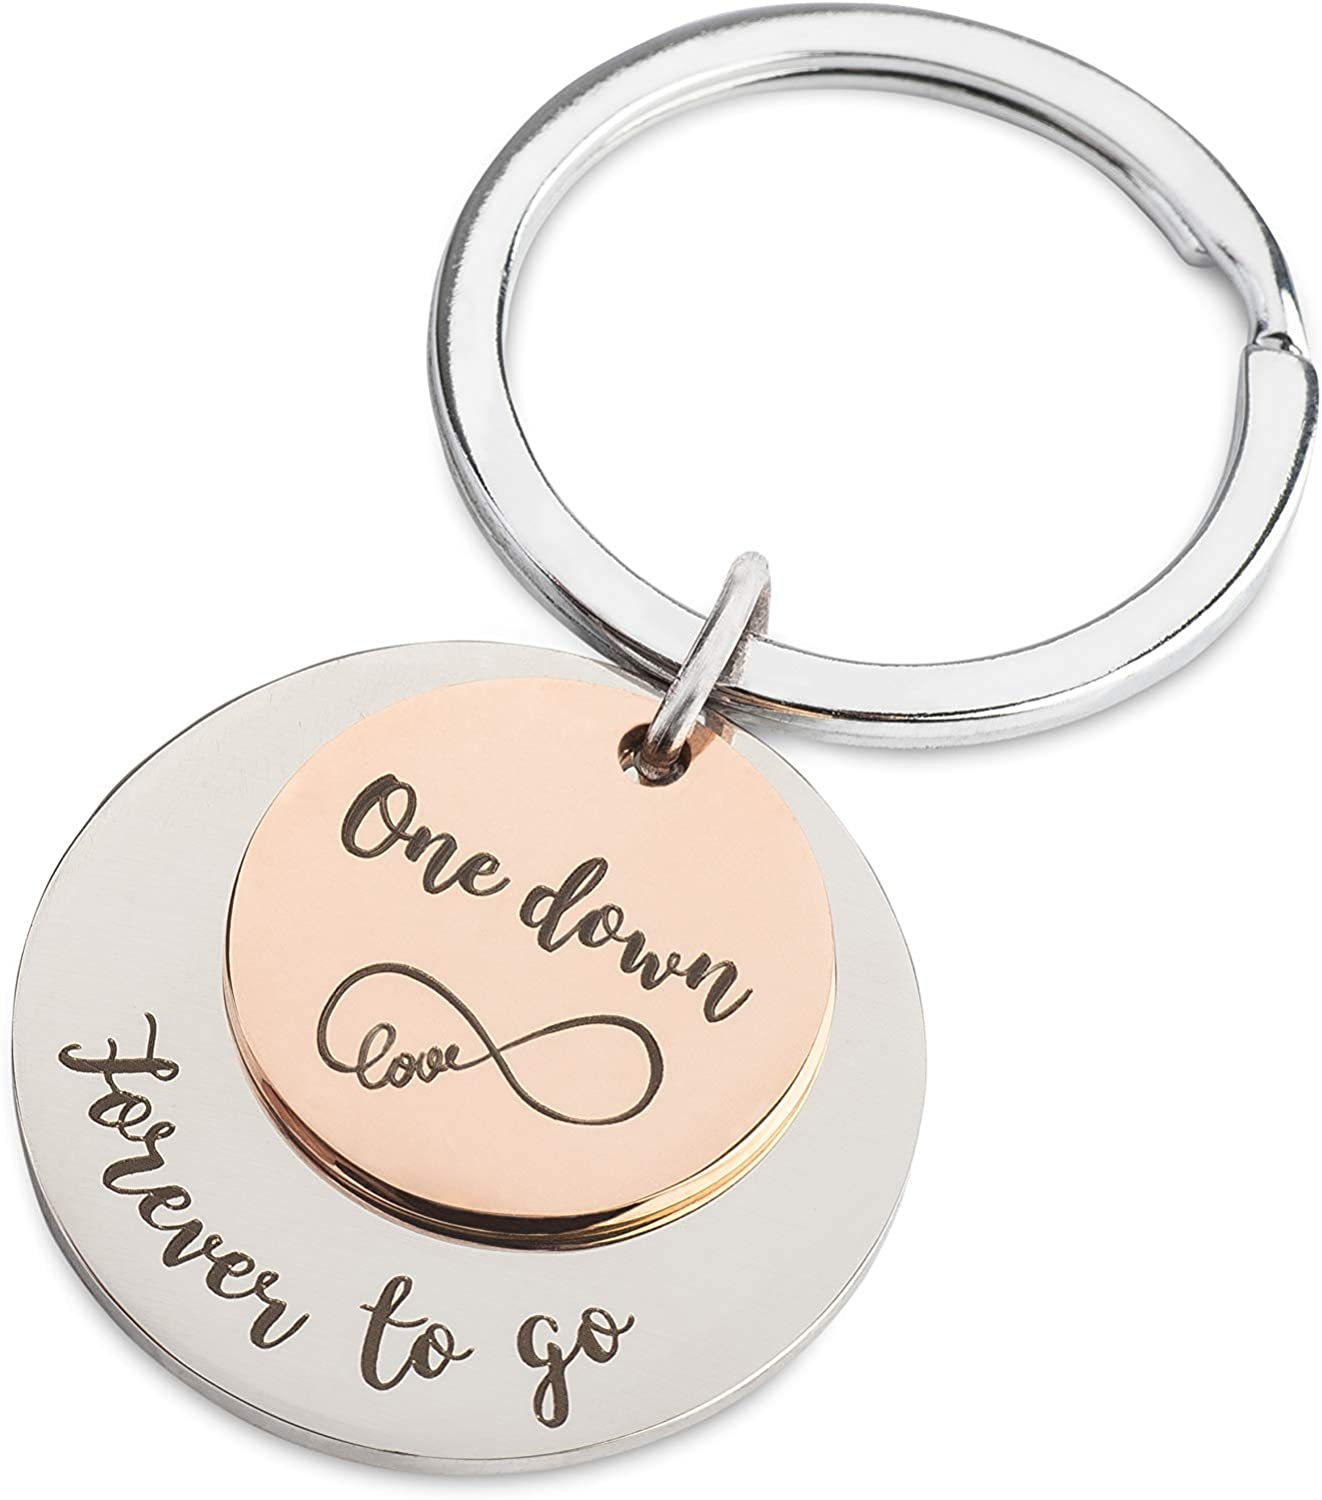 One Year Anniversary Keychain I Gifts for Girlfriend, Boyfriend, Him, Her I Gift Box Included